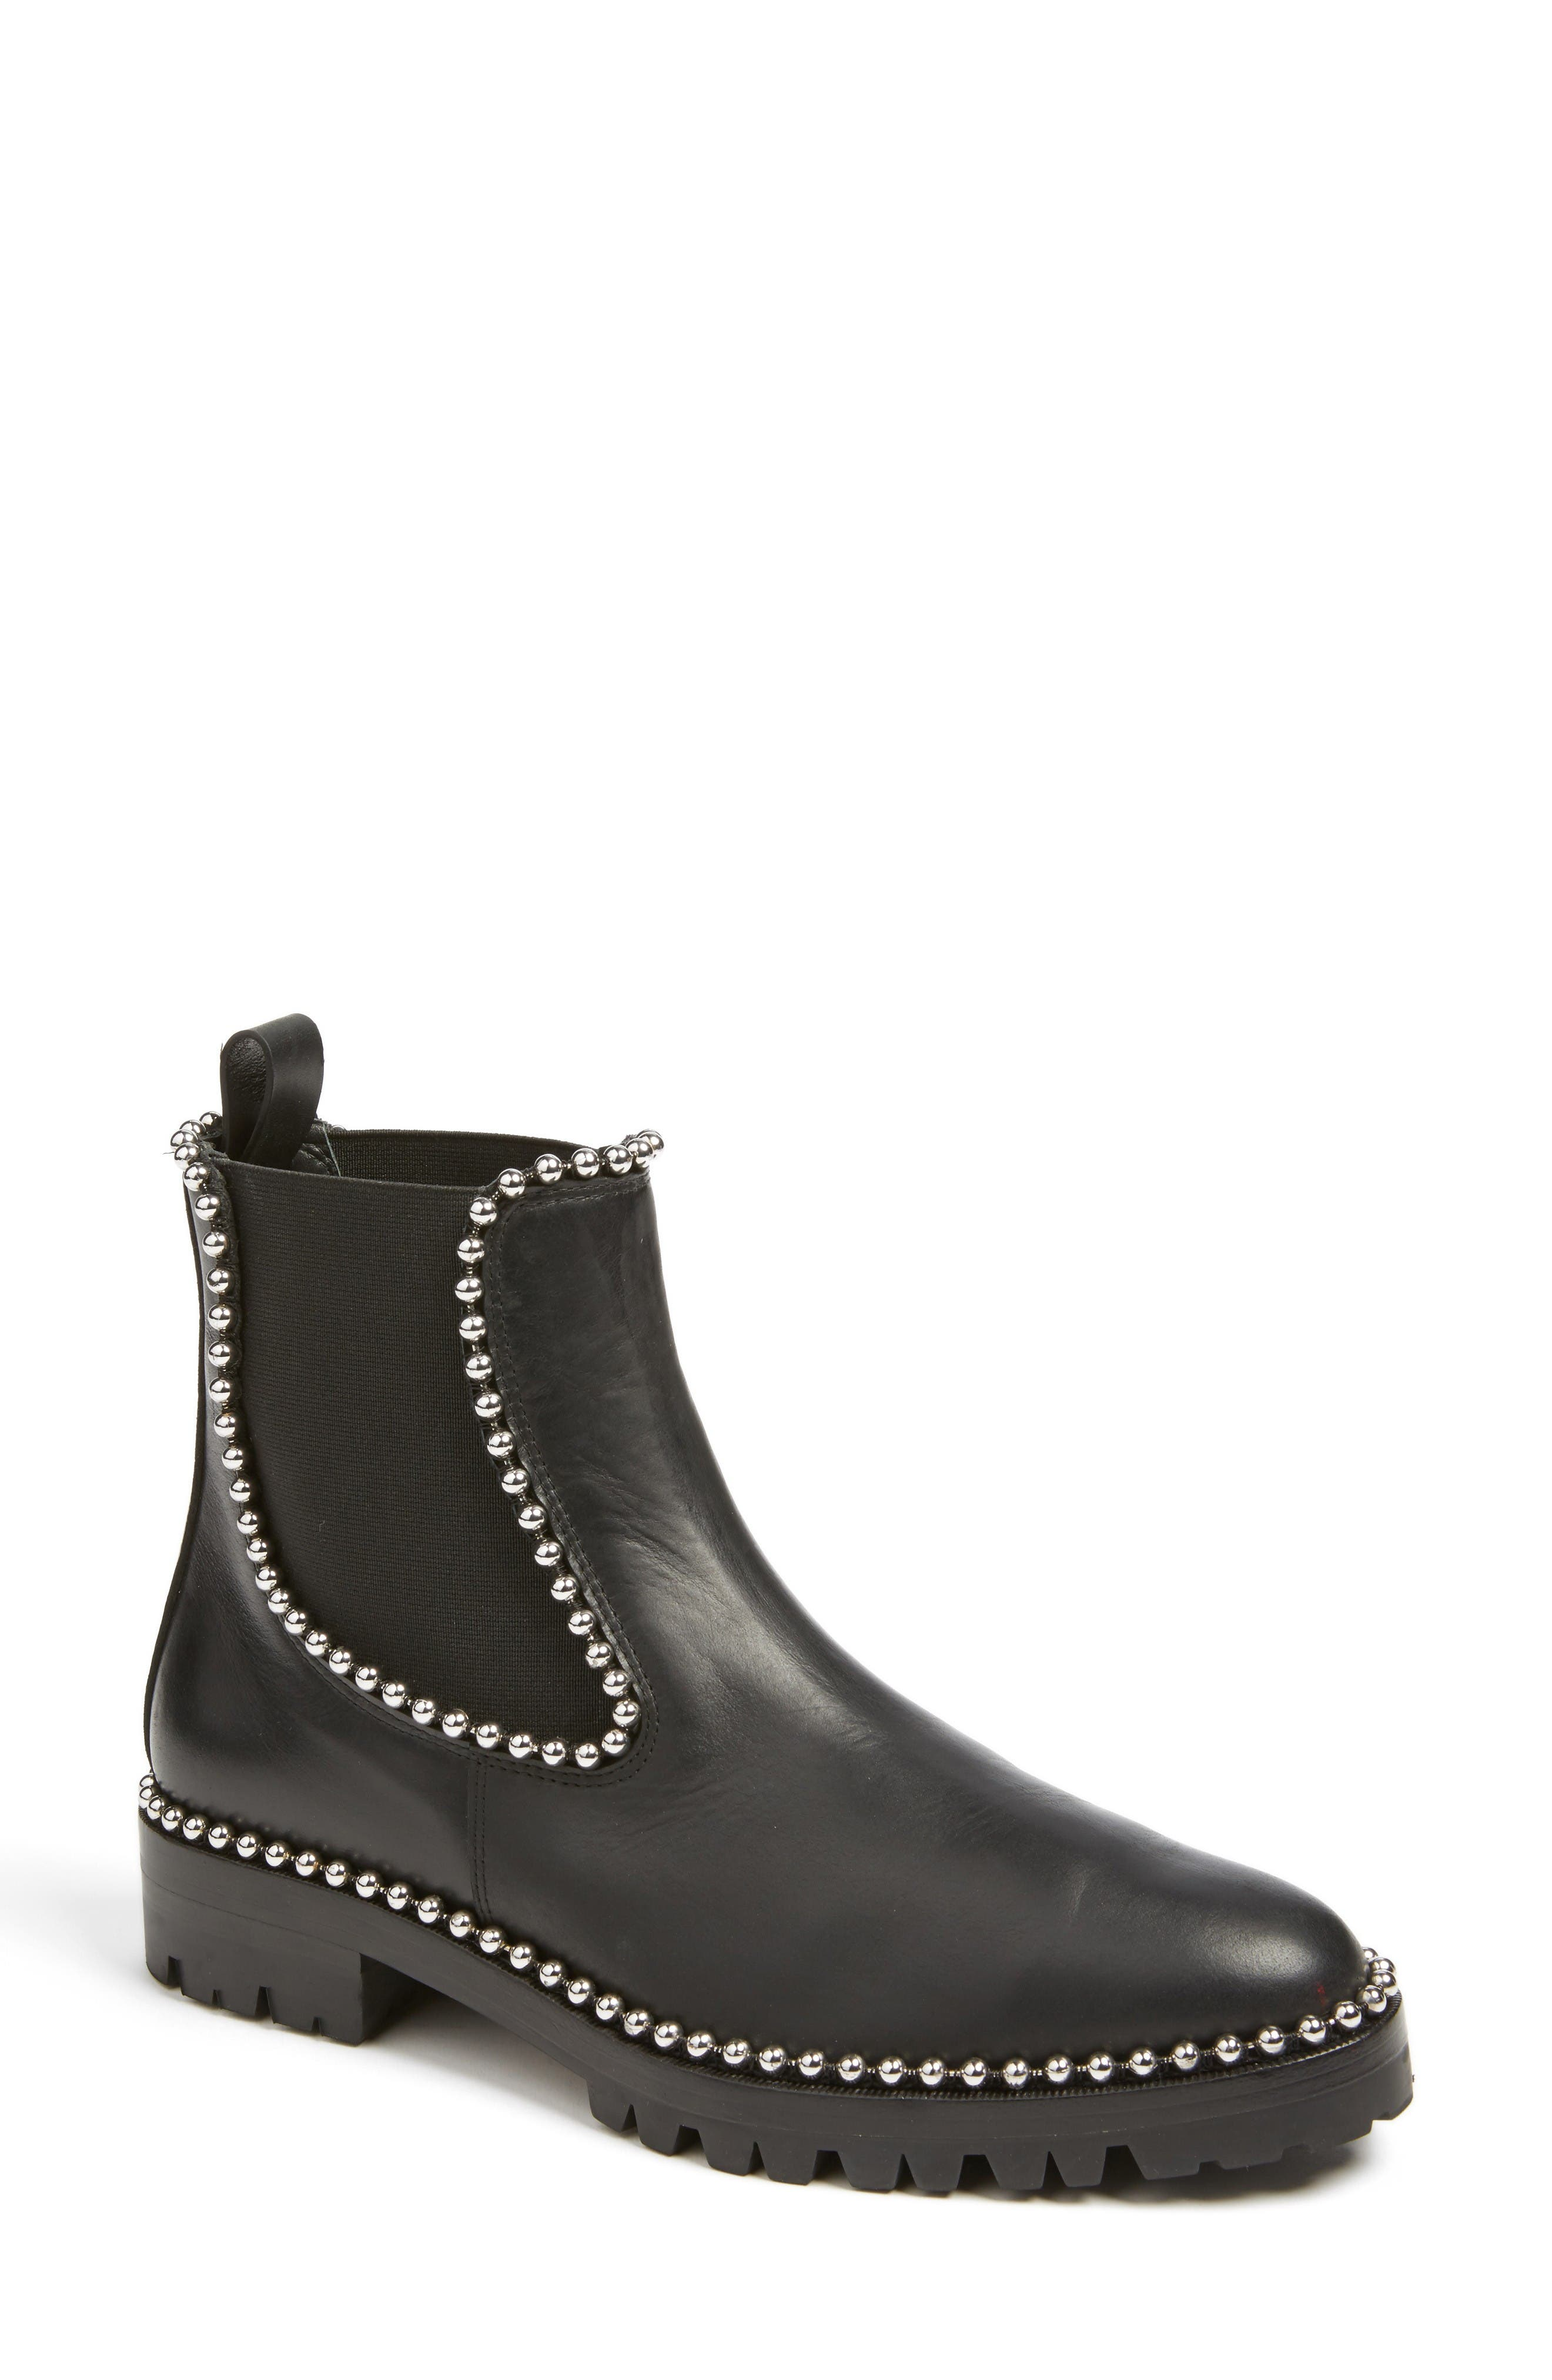 Spencer Chelsea Boot,                             Main thumbnail 1, color,                             Black Leather